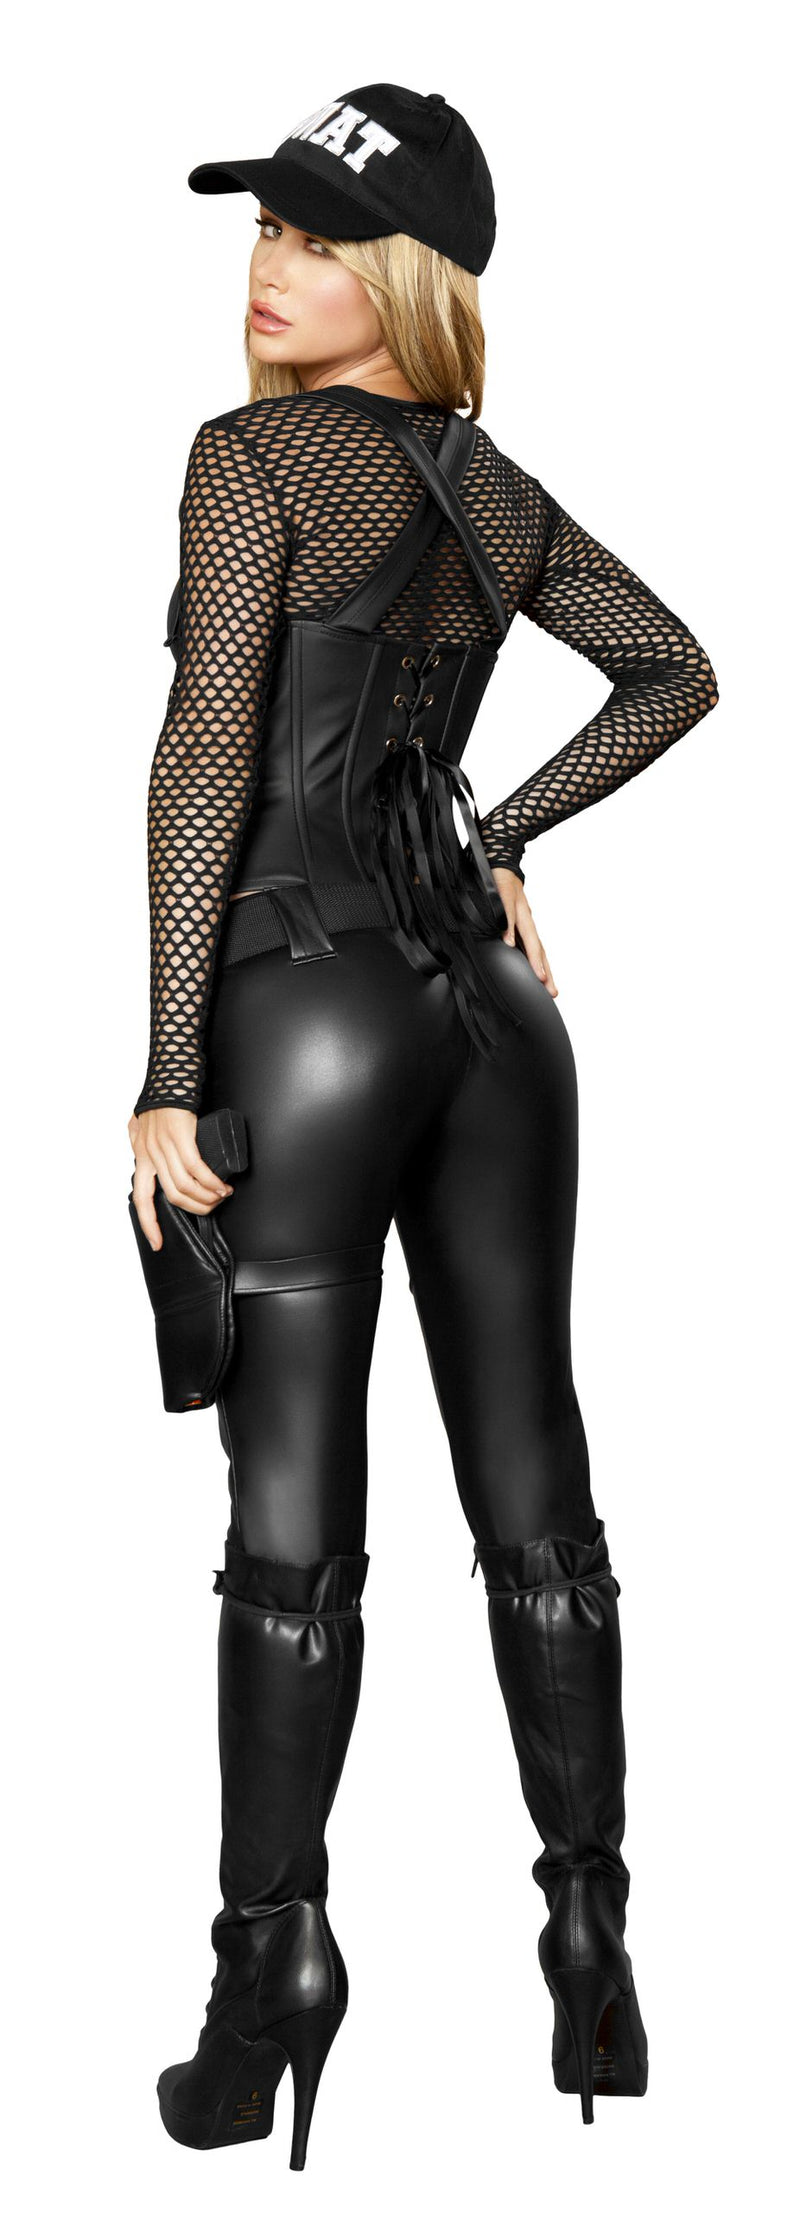 5 Piece Sexy SWAT Officer Top Cincher & Pants w/ Accessories Party Costume - Fest Threads